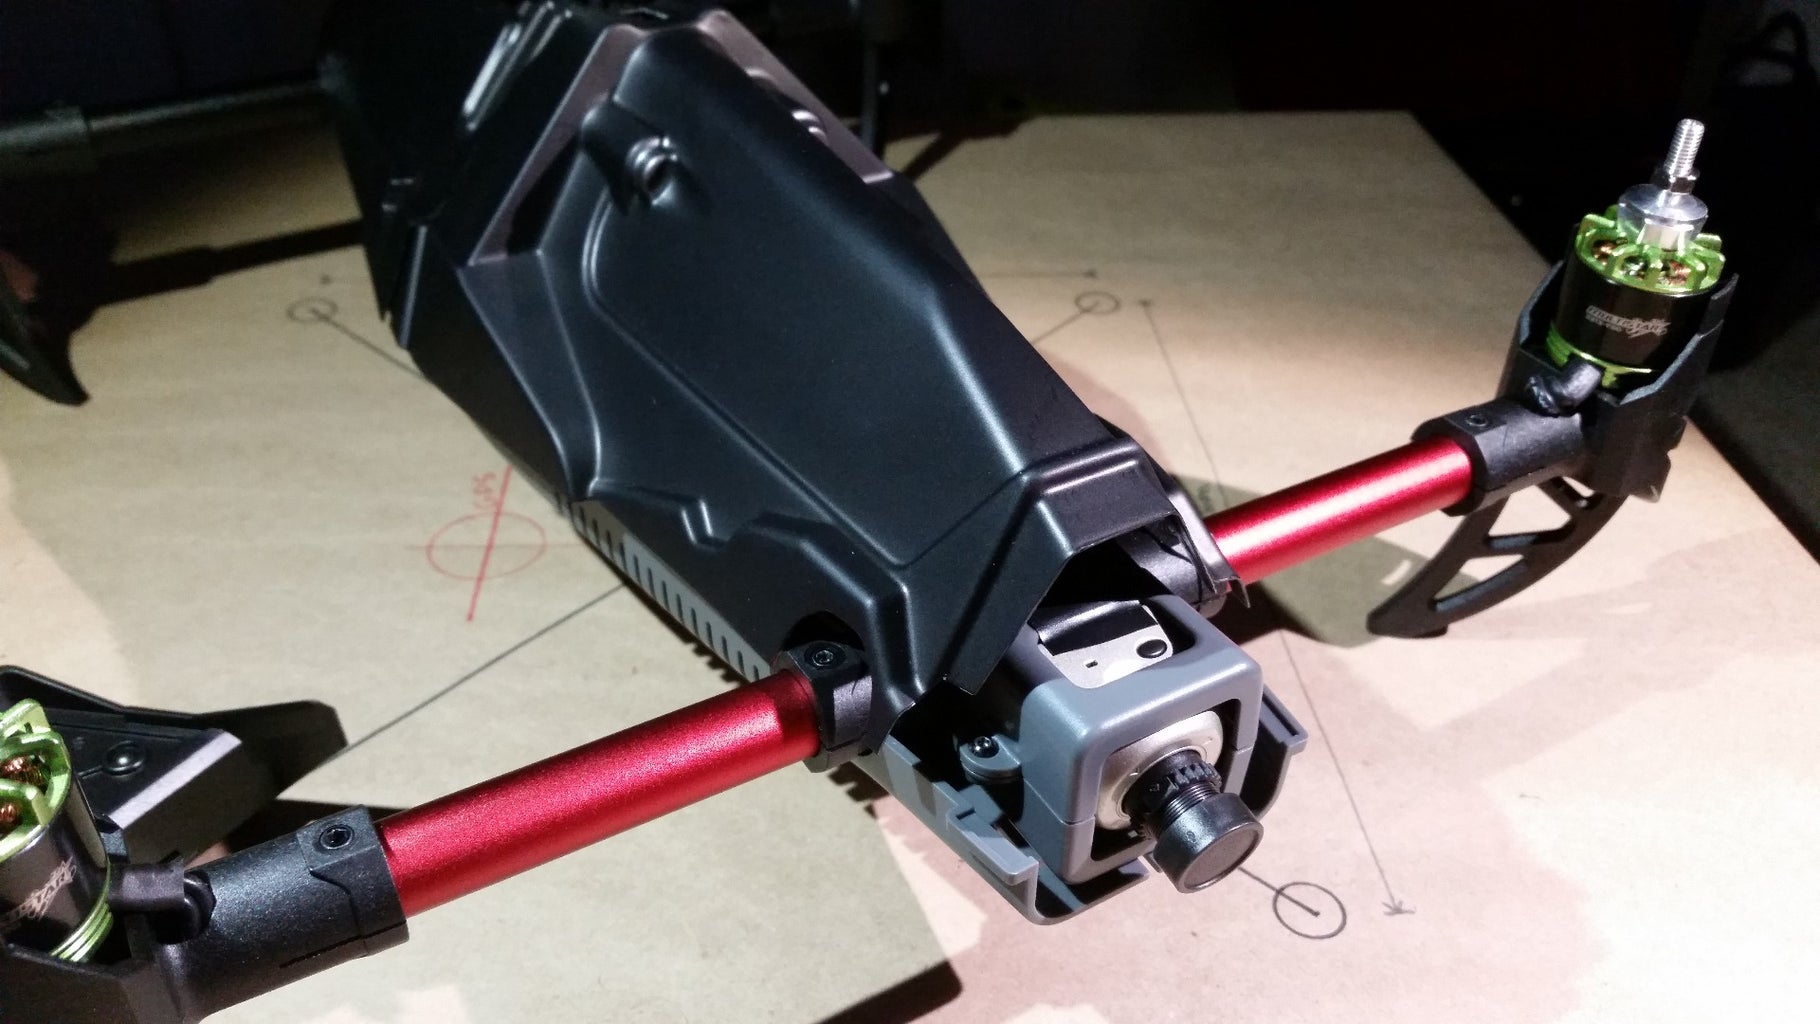 Attach the Front Upper Shell/Camera Cover